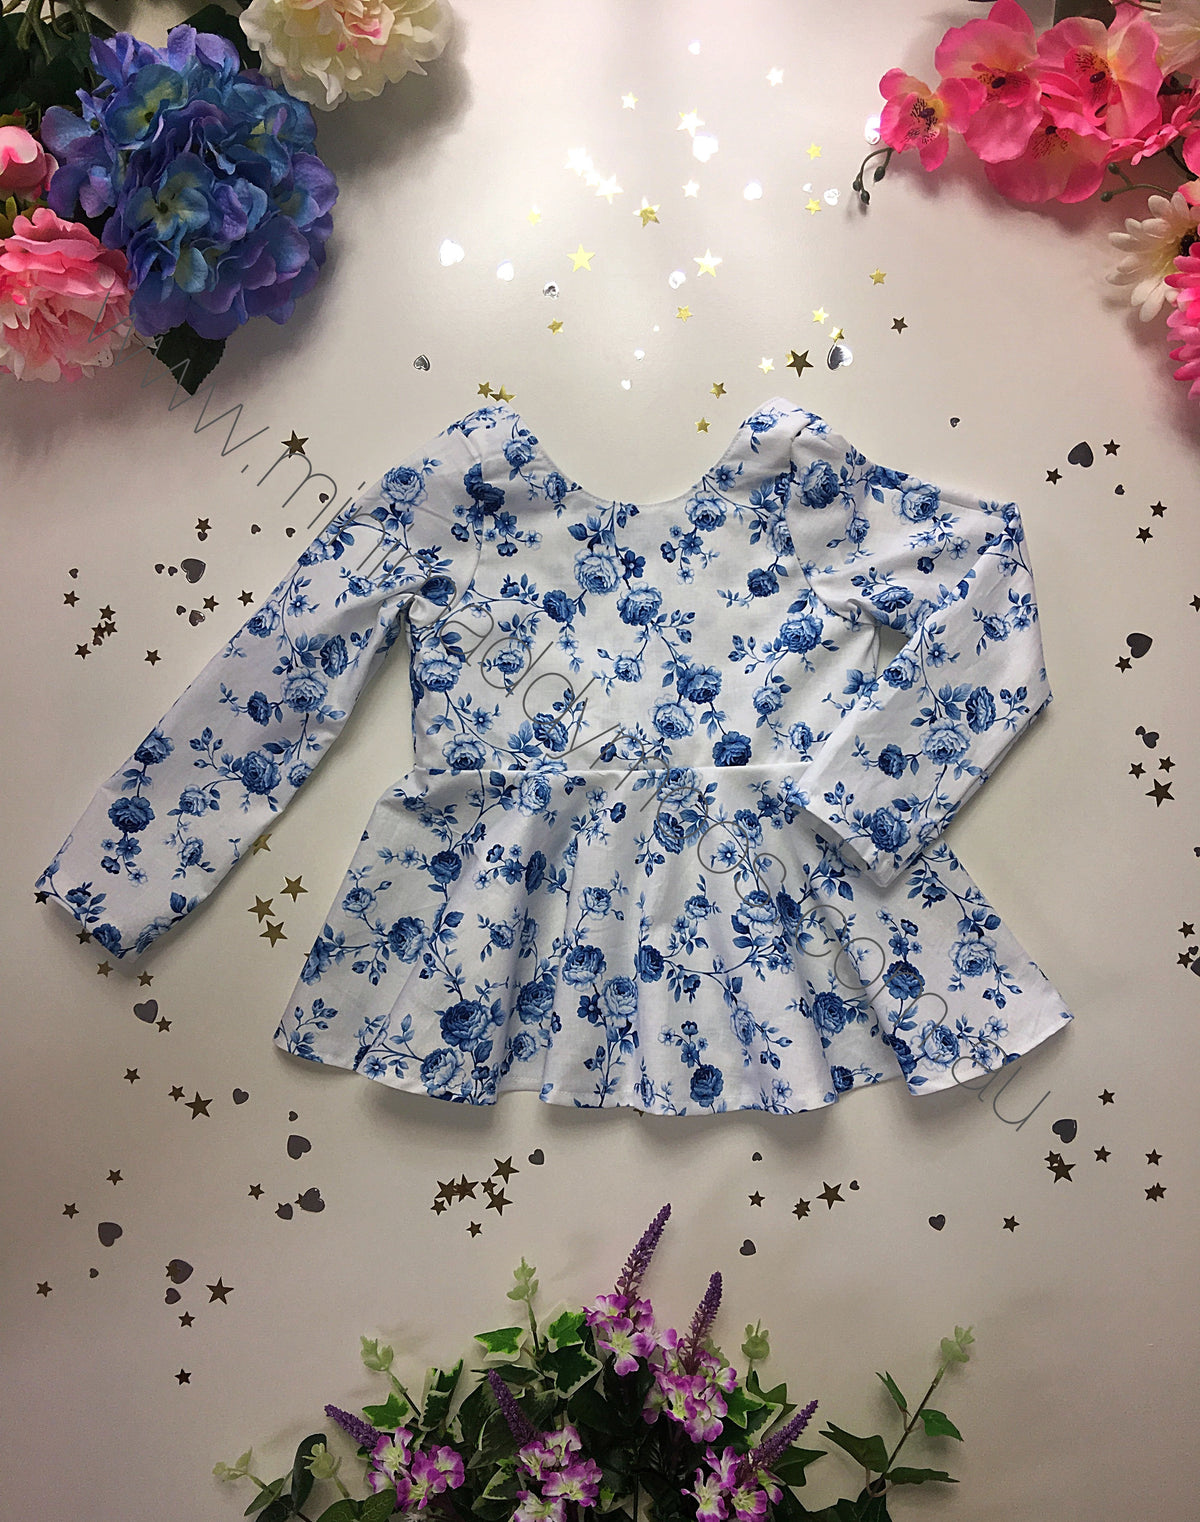 Custom -  Longsleeve Peplum Top or Dress - Mini Maddy Moo's